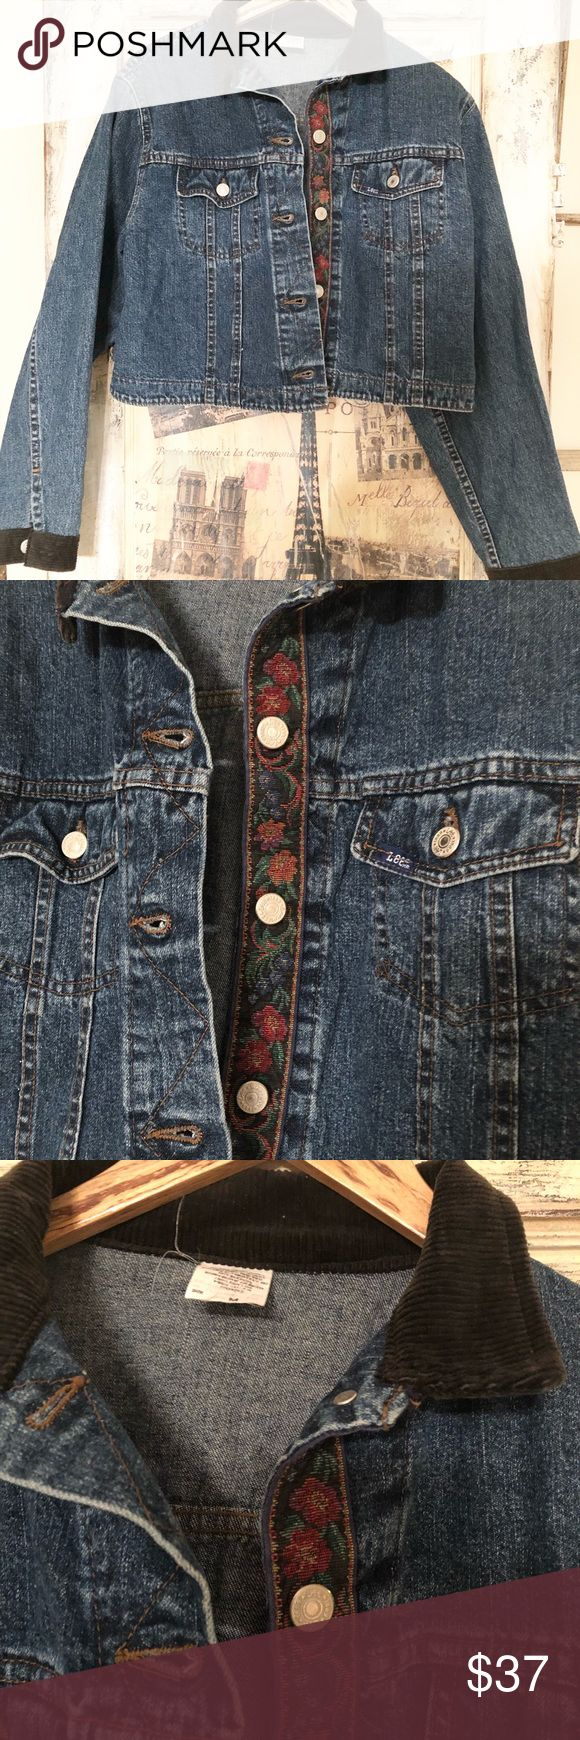 Vintage Cropped Lee jean jacket Adorable cropped Vintage Lee jean jacket with black corduroy collar and cuffs. There is a floral embroidered like strip running down inside where button holes are. Very cute and on trend! Lee Jackets & Coats Jean Jackets